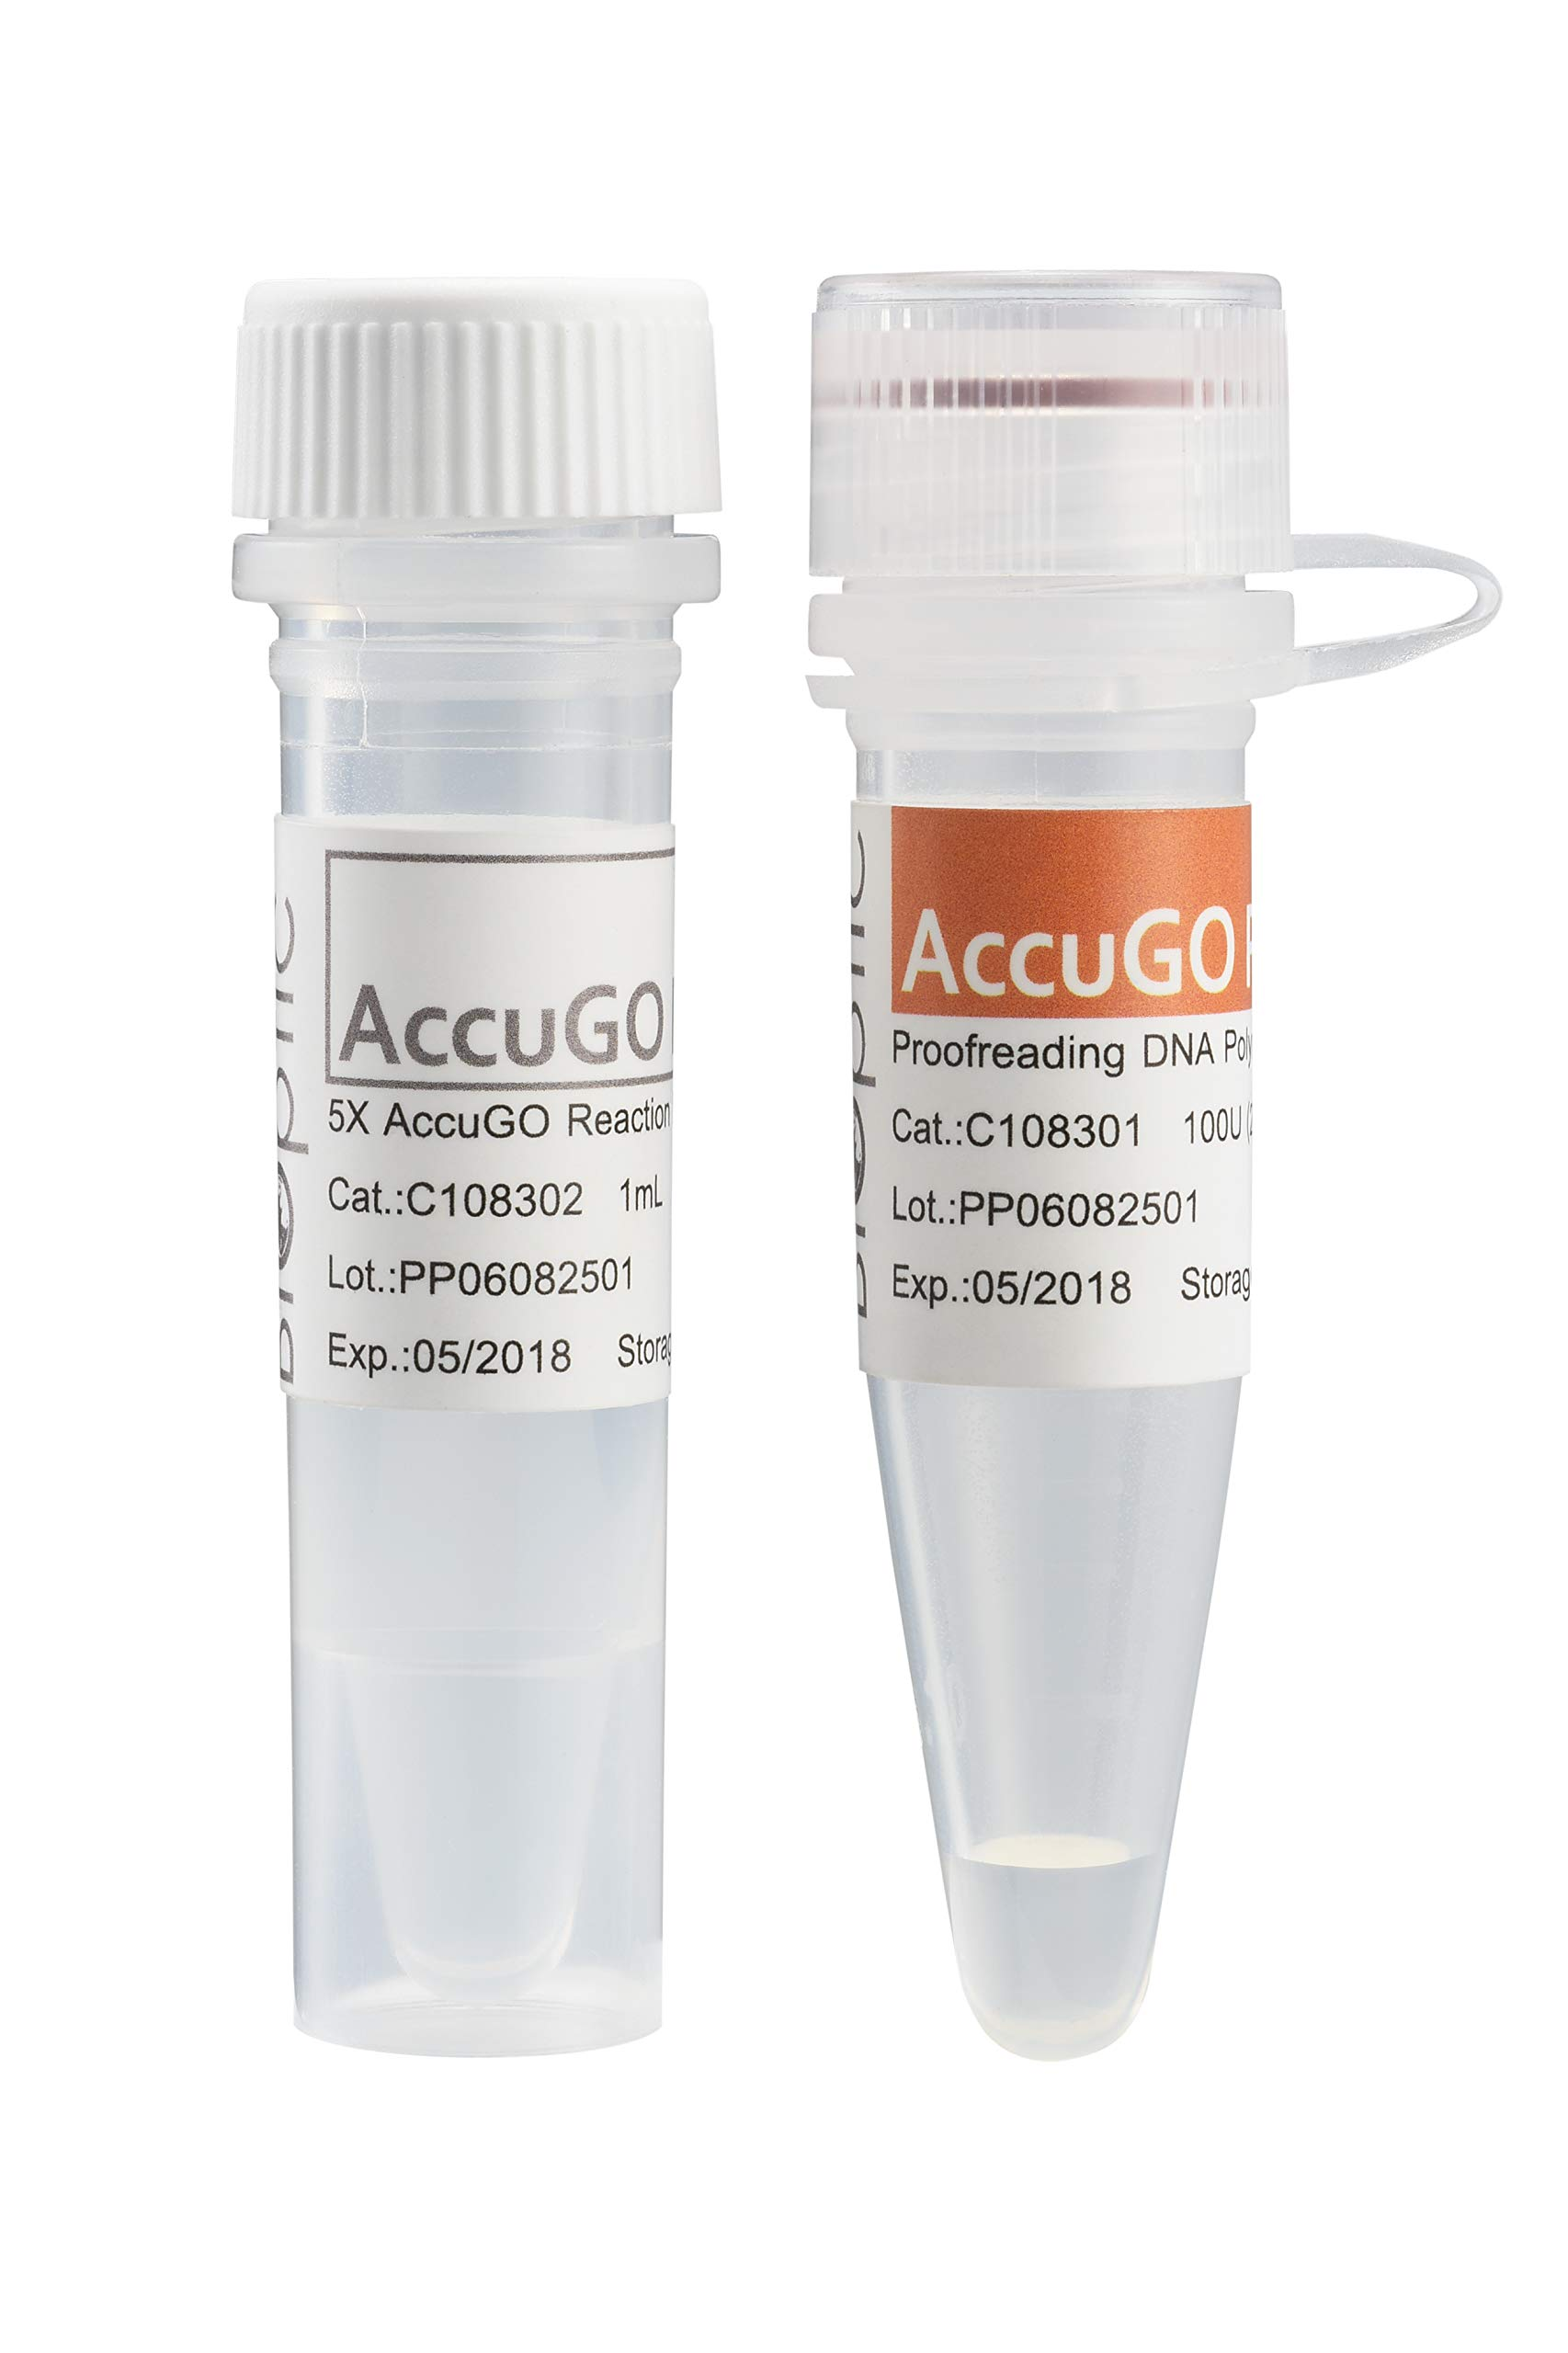 BiOptic, AccuGO Pfu Proofreading DNA Polymerase (Including 5X Accugo Reaction Buffer) (C108300), Short Extension Time, High Yield PCR Products, Good Performance in GC Rich Template for PCR by BiOptic